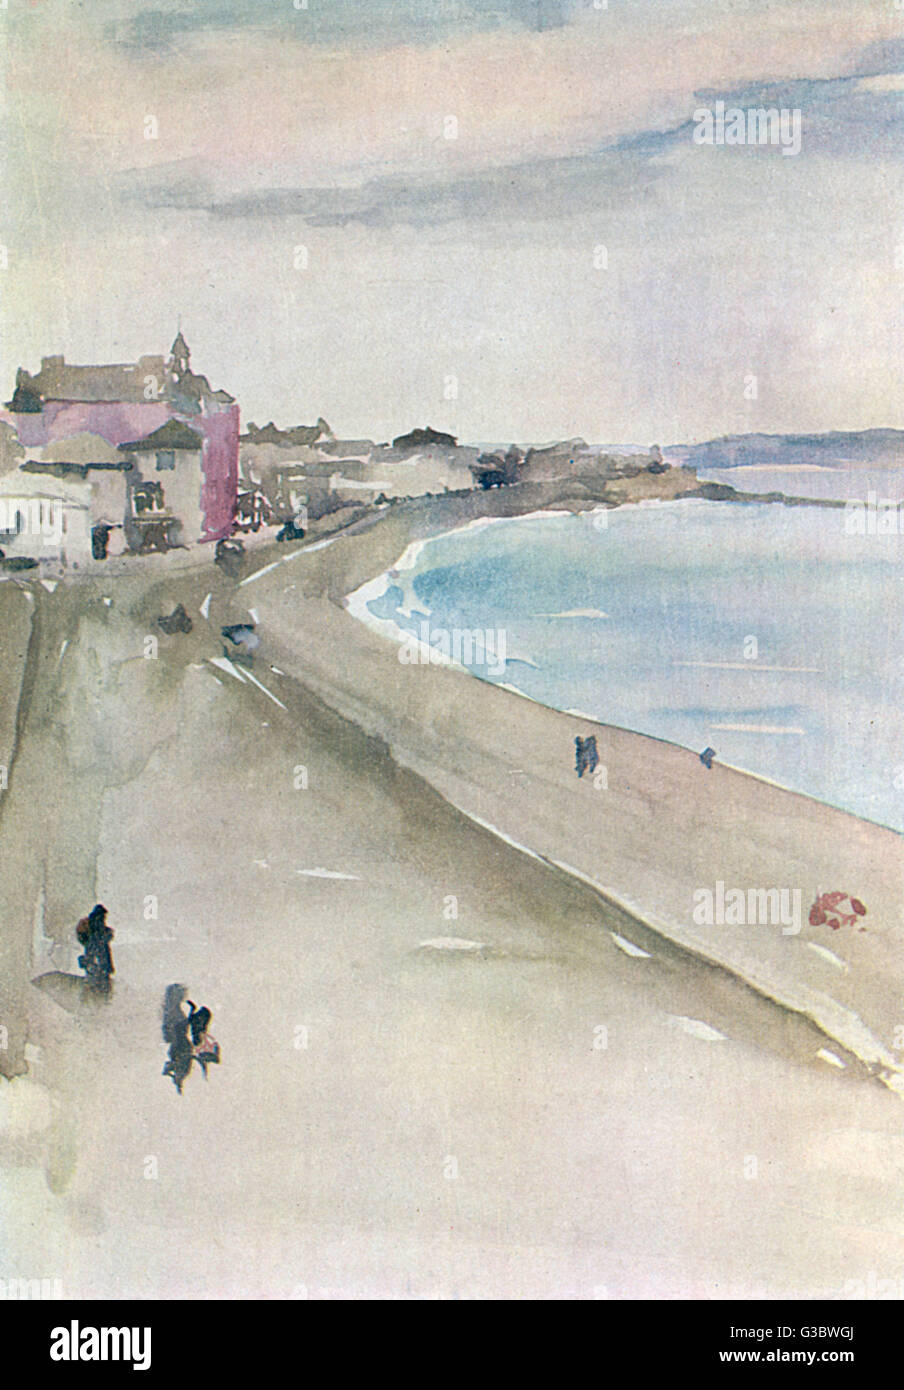 A watercolour study of St Ives, Cornwall by James Abbott McNeill Whistler (1834-1903).     Date: 1905 - Stock Image